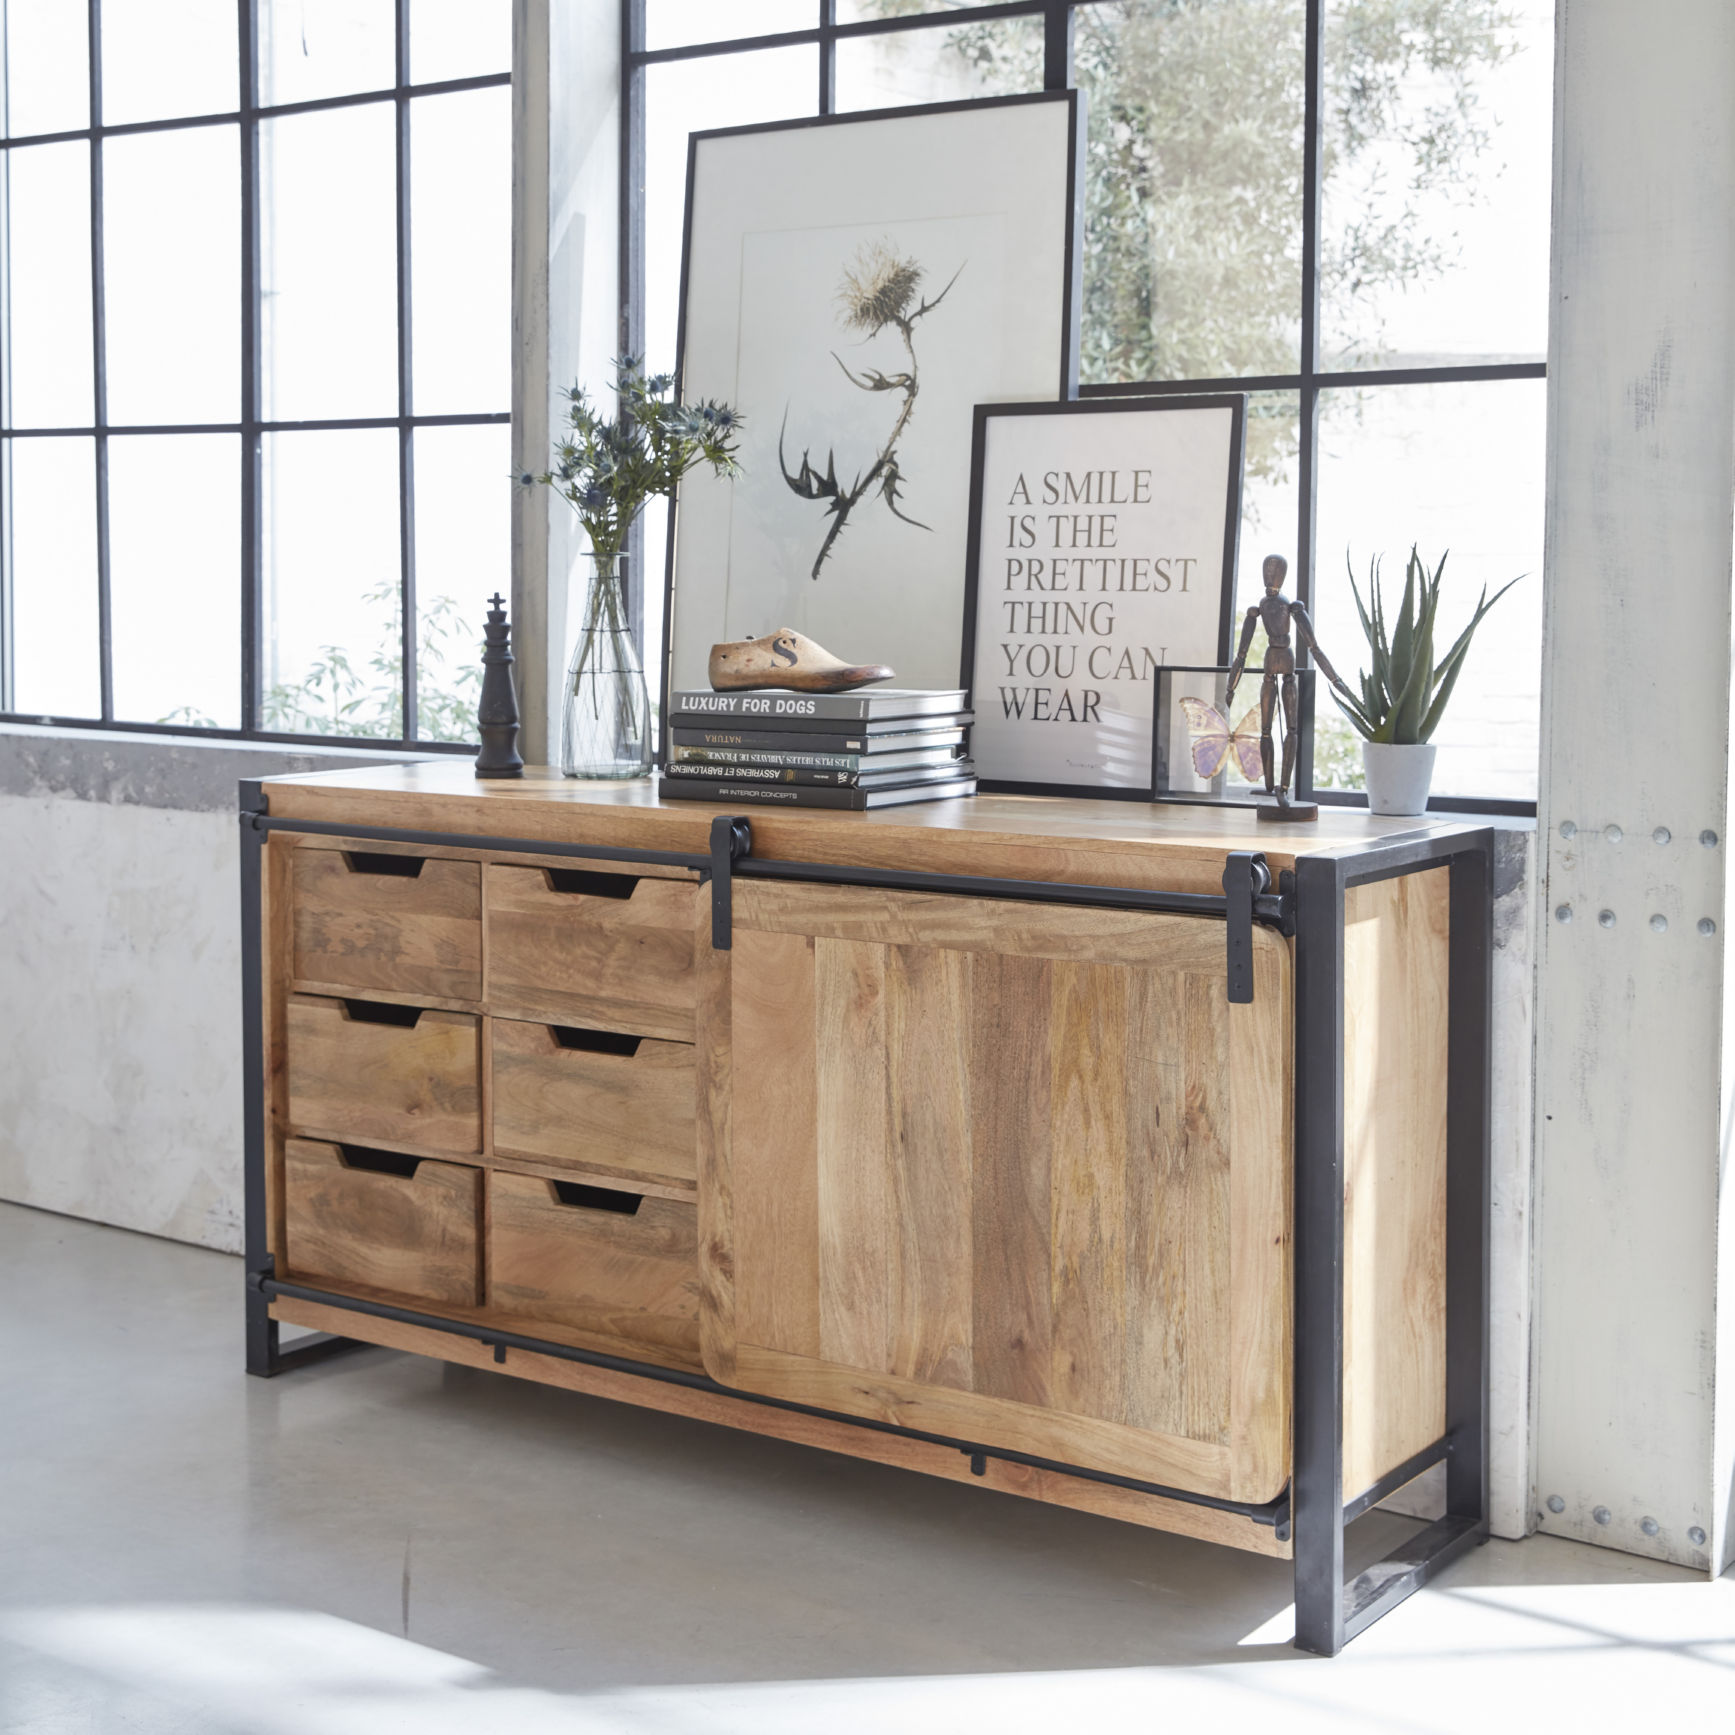 made in meubles meuble industriel bois massif meuble. Black Bedroom Furniture Sets. Home Design Ideas